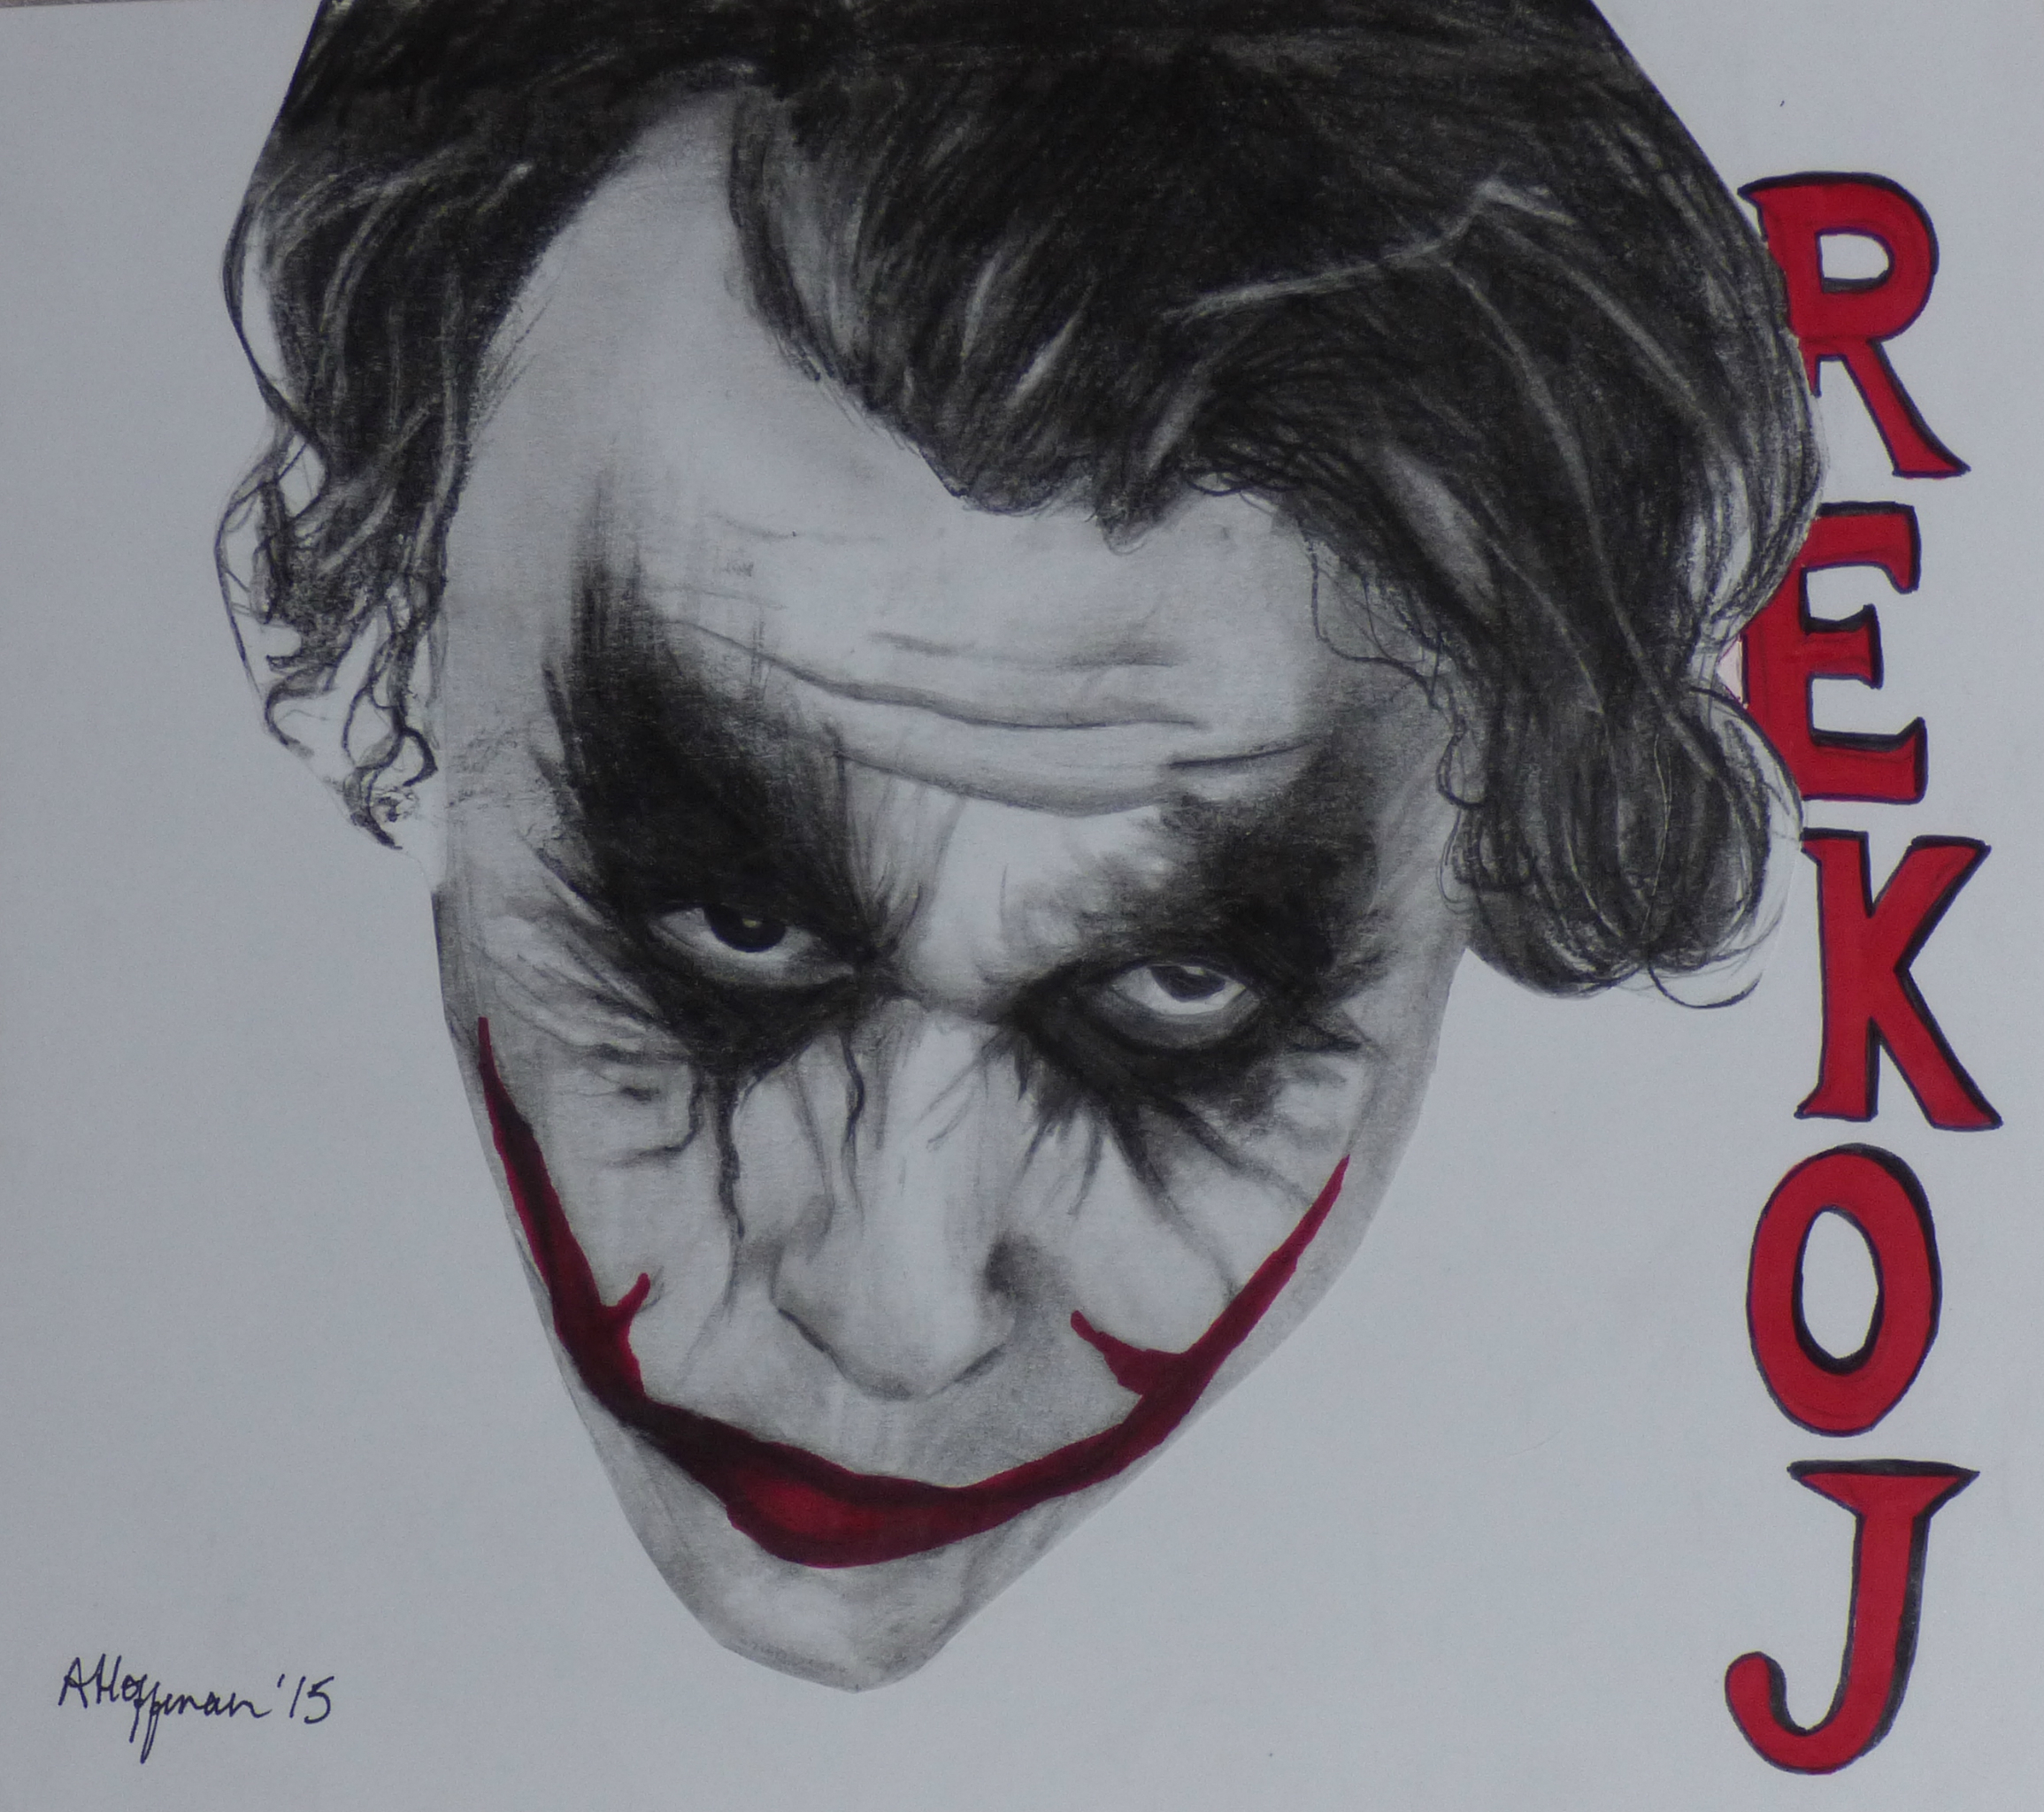 Dark knight joker drawing